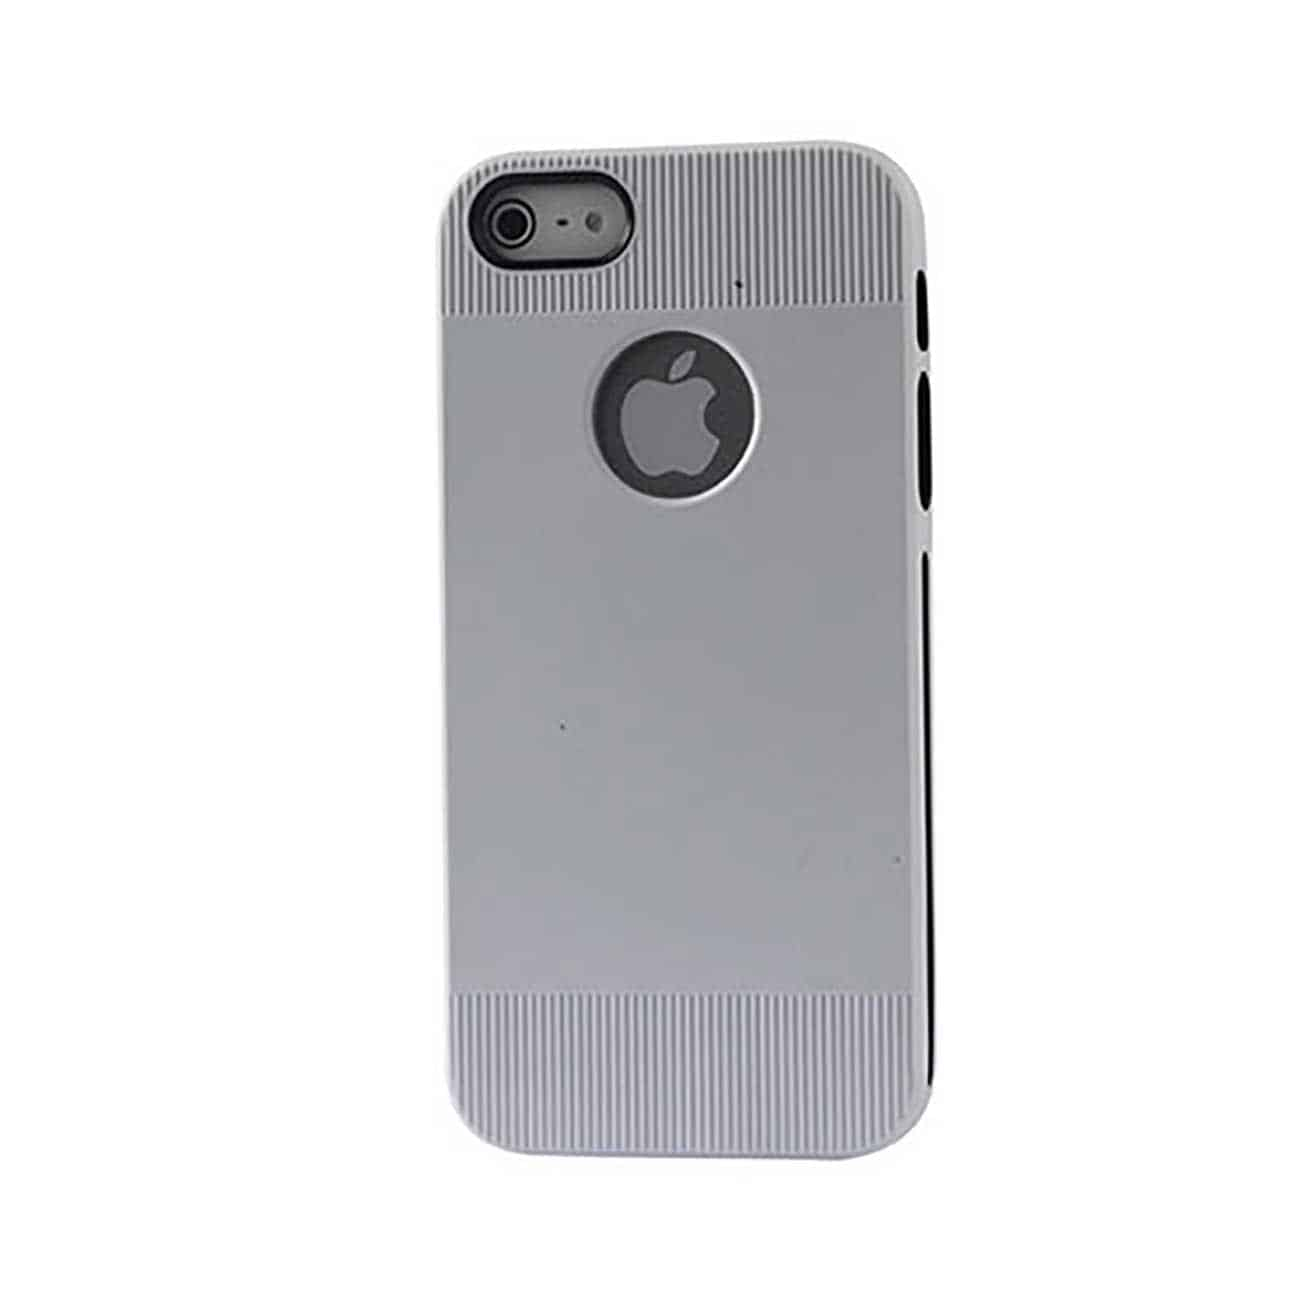 IPHONE SE/ 5S/ 5 DUAL COLOR CASE WITH RIDGES IN WHITE BLACK